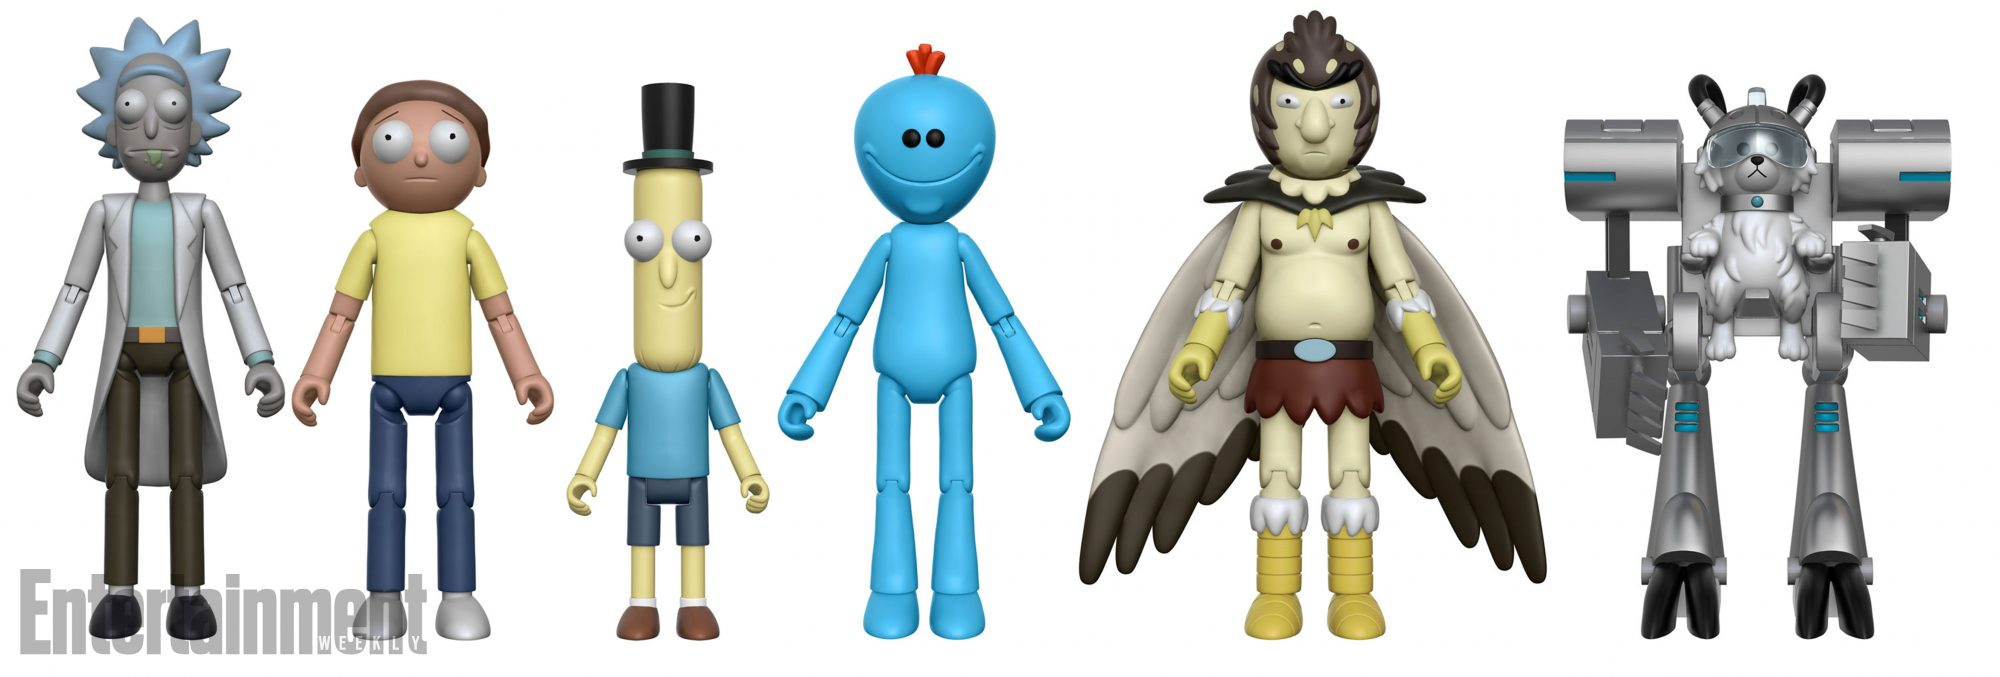 rm_actionfigs_renders